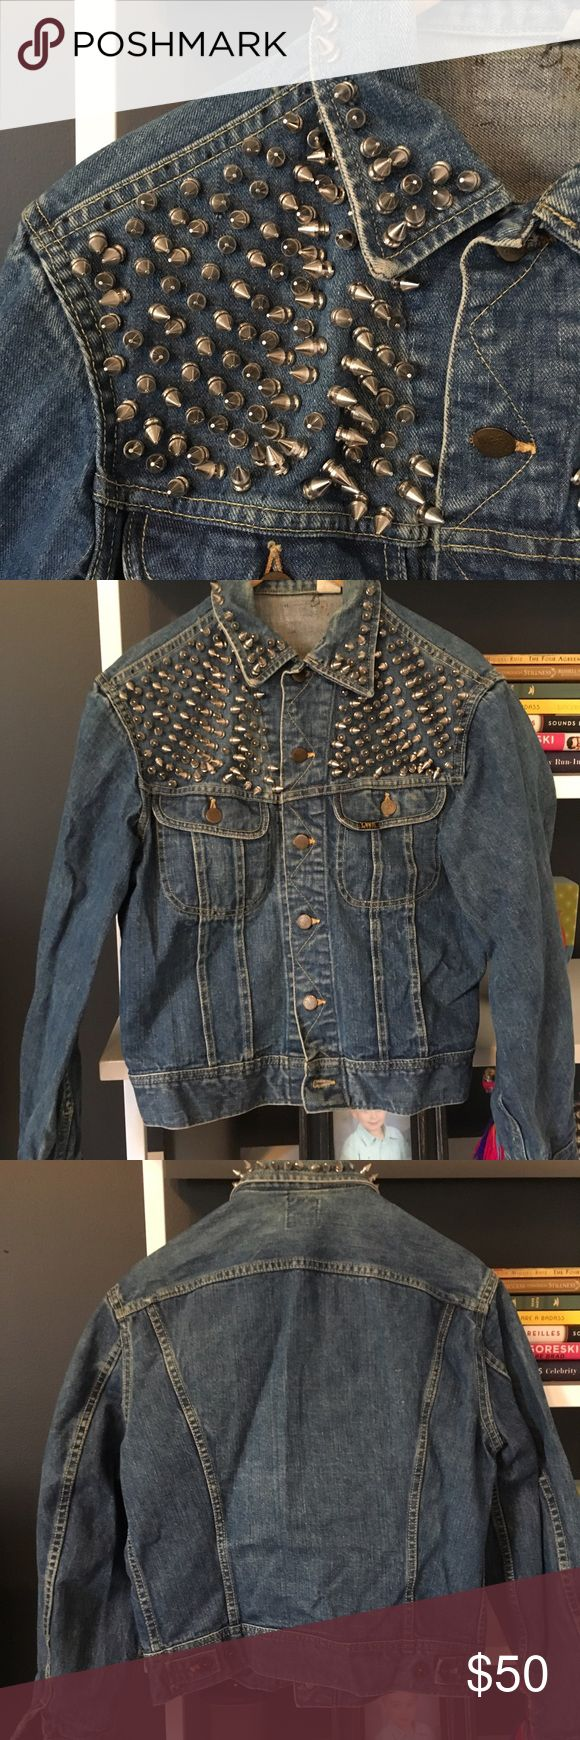 LEE studded jean jacket Handmade by me! Each spike was individually screwed into the jacket. LEE jean jacket in a small. Has a nice weight to it. Definitely a statement piece. Hard to part with. Ask for measurements if need be! Lee Jackets & Coats